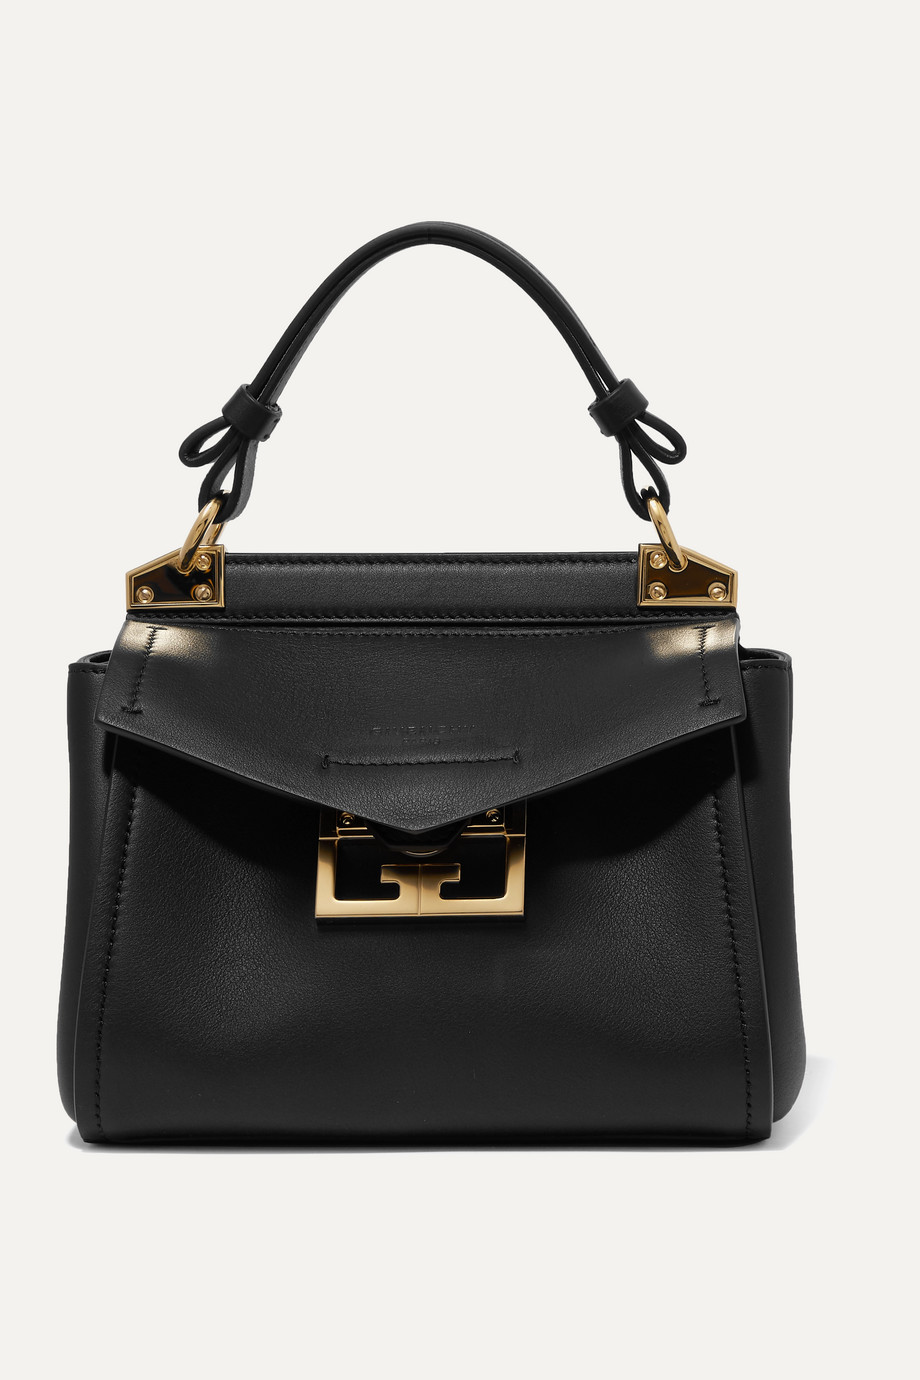 Givenchy Sac à main en cuir Mystic Mini